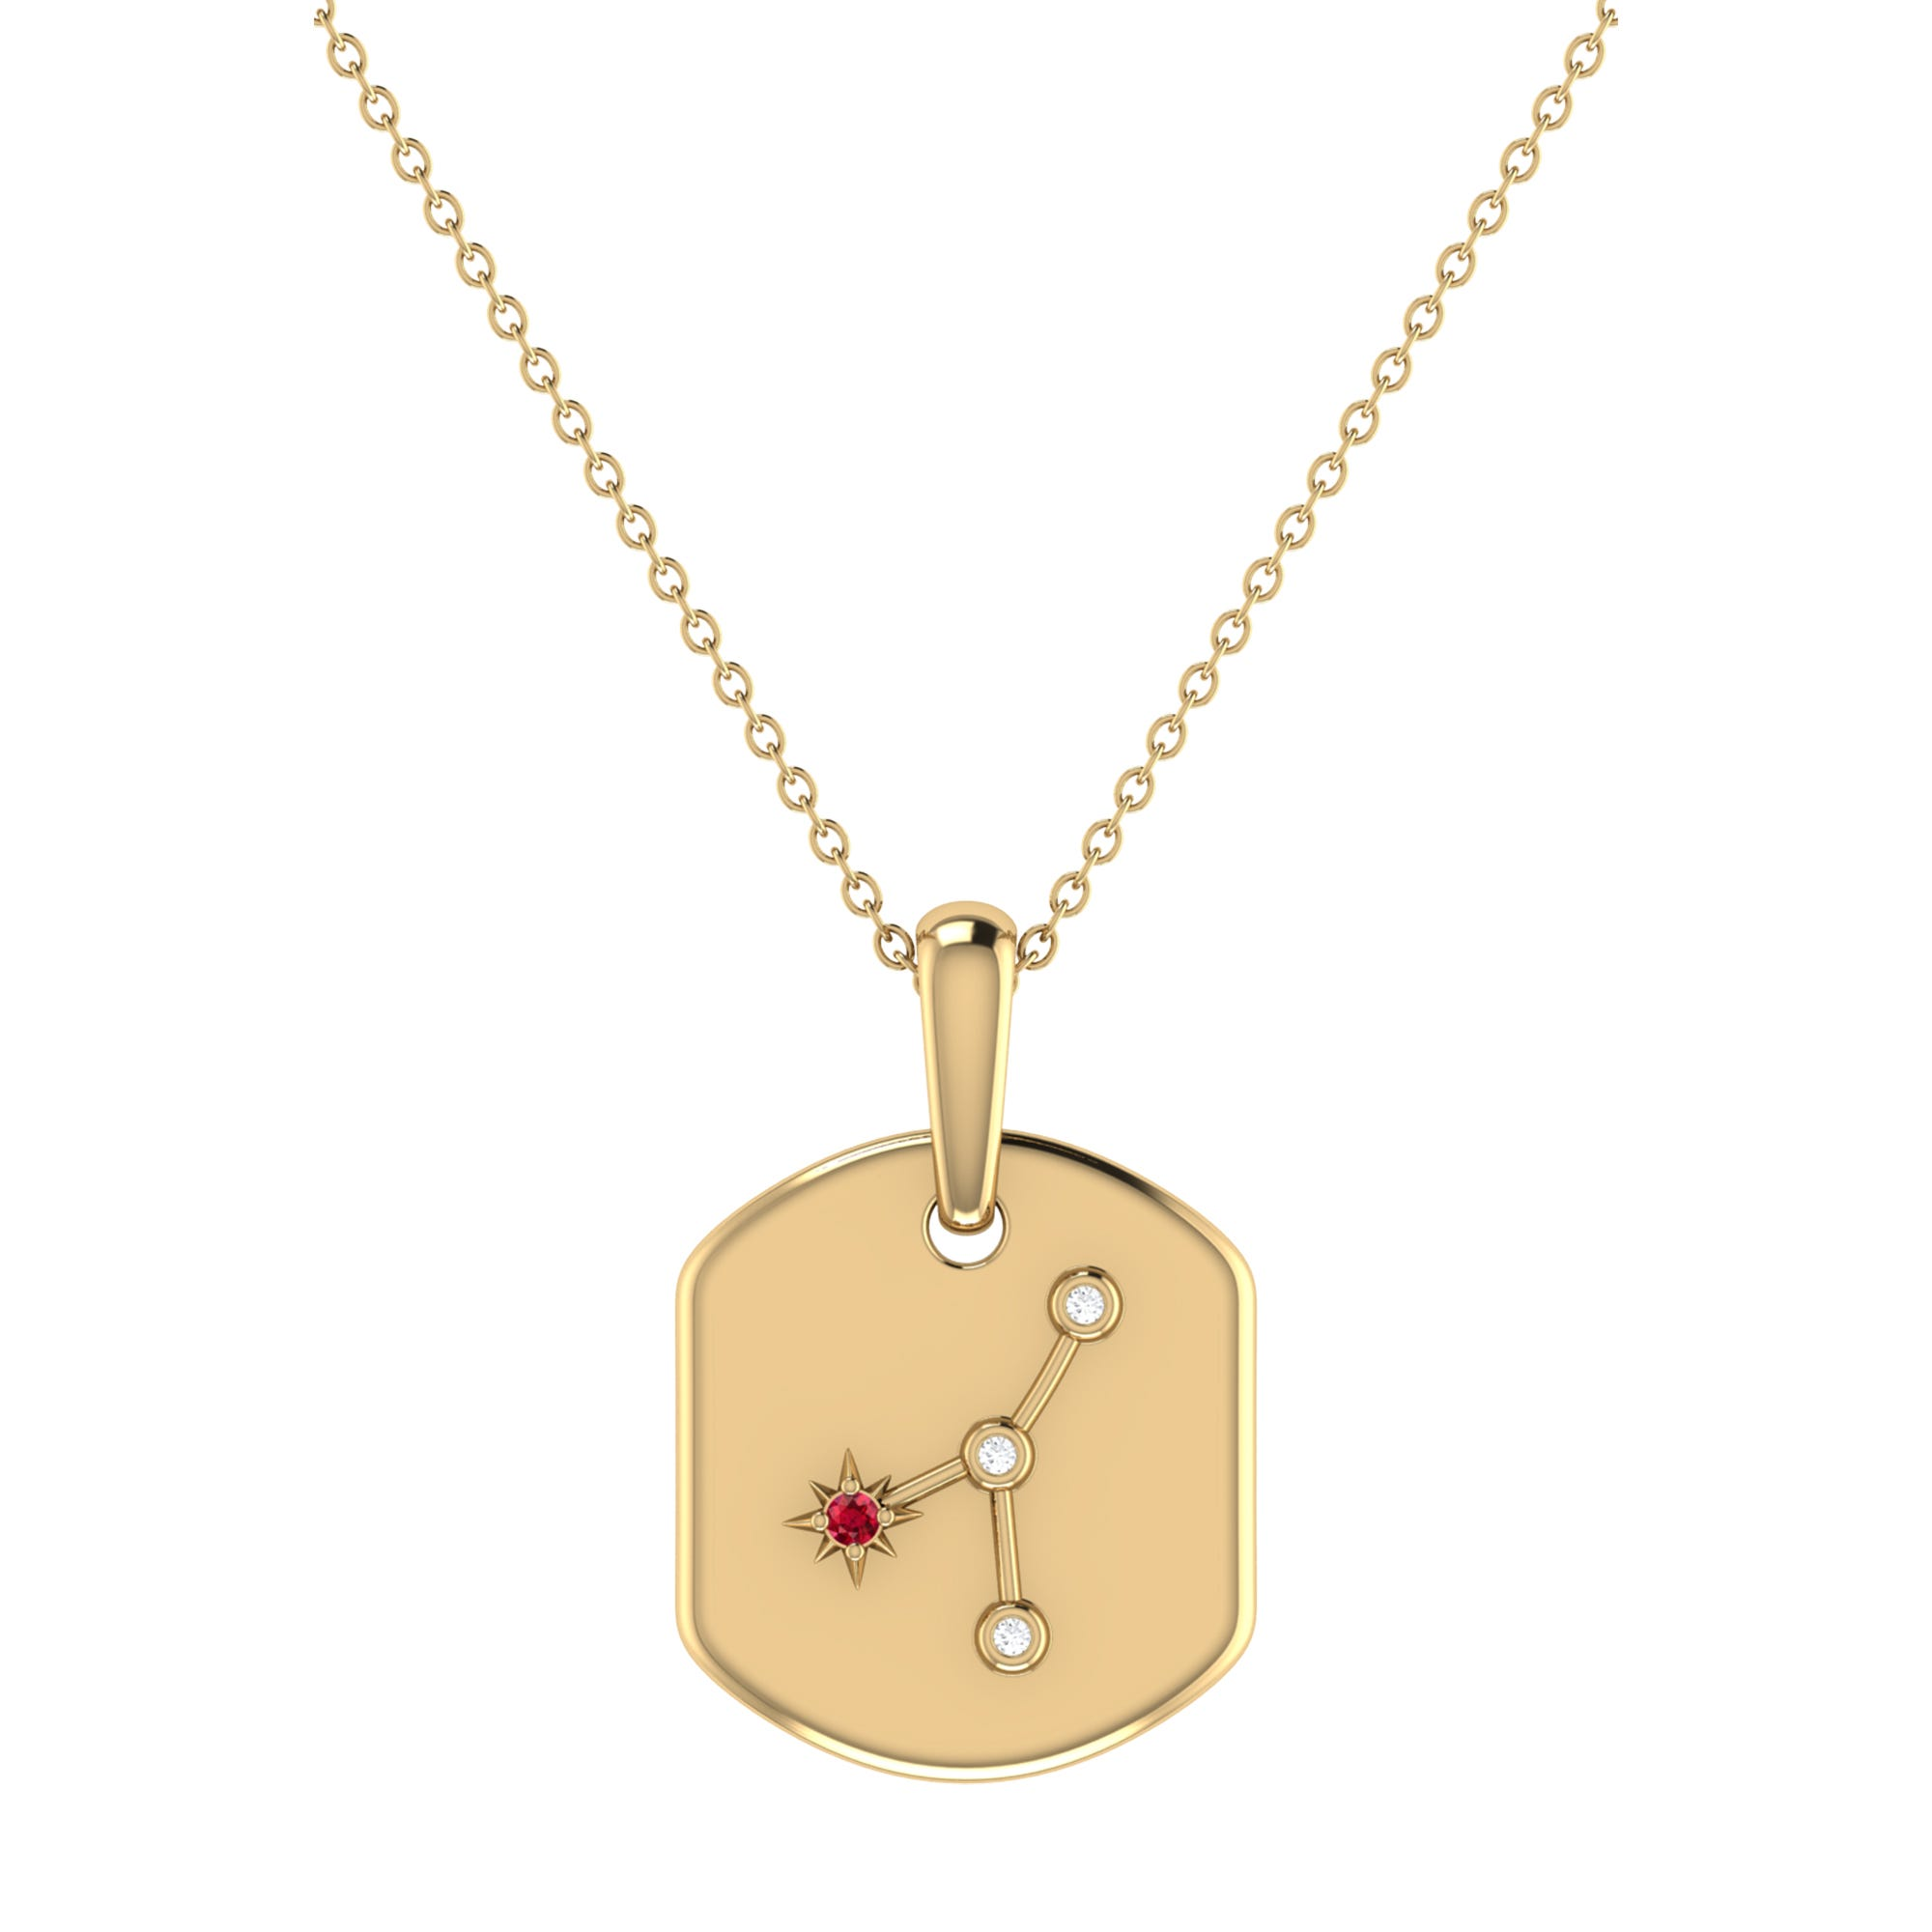 Diamond and Ruby Cancer Constellation Tag Necklace in 14k Yellow Gold Plated Sterling Silver